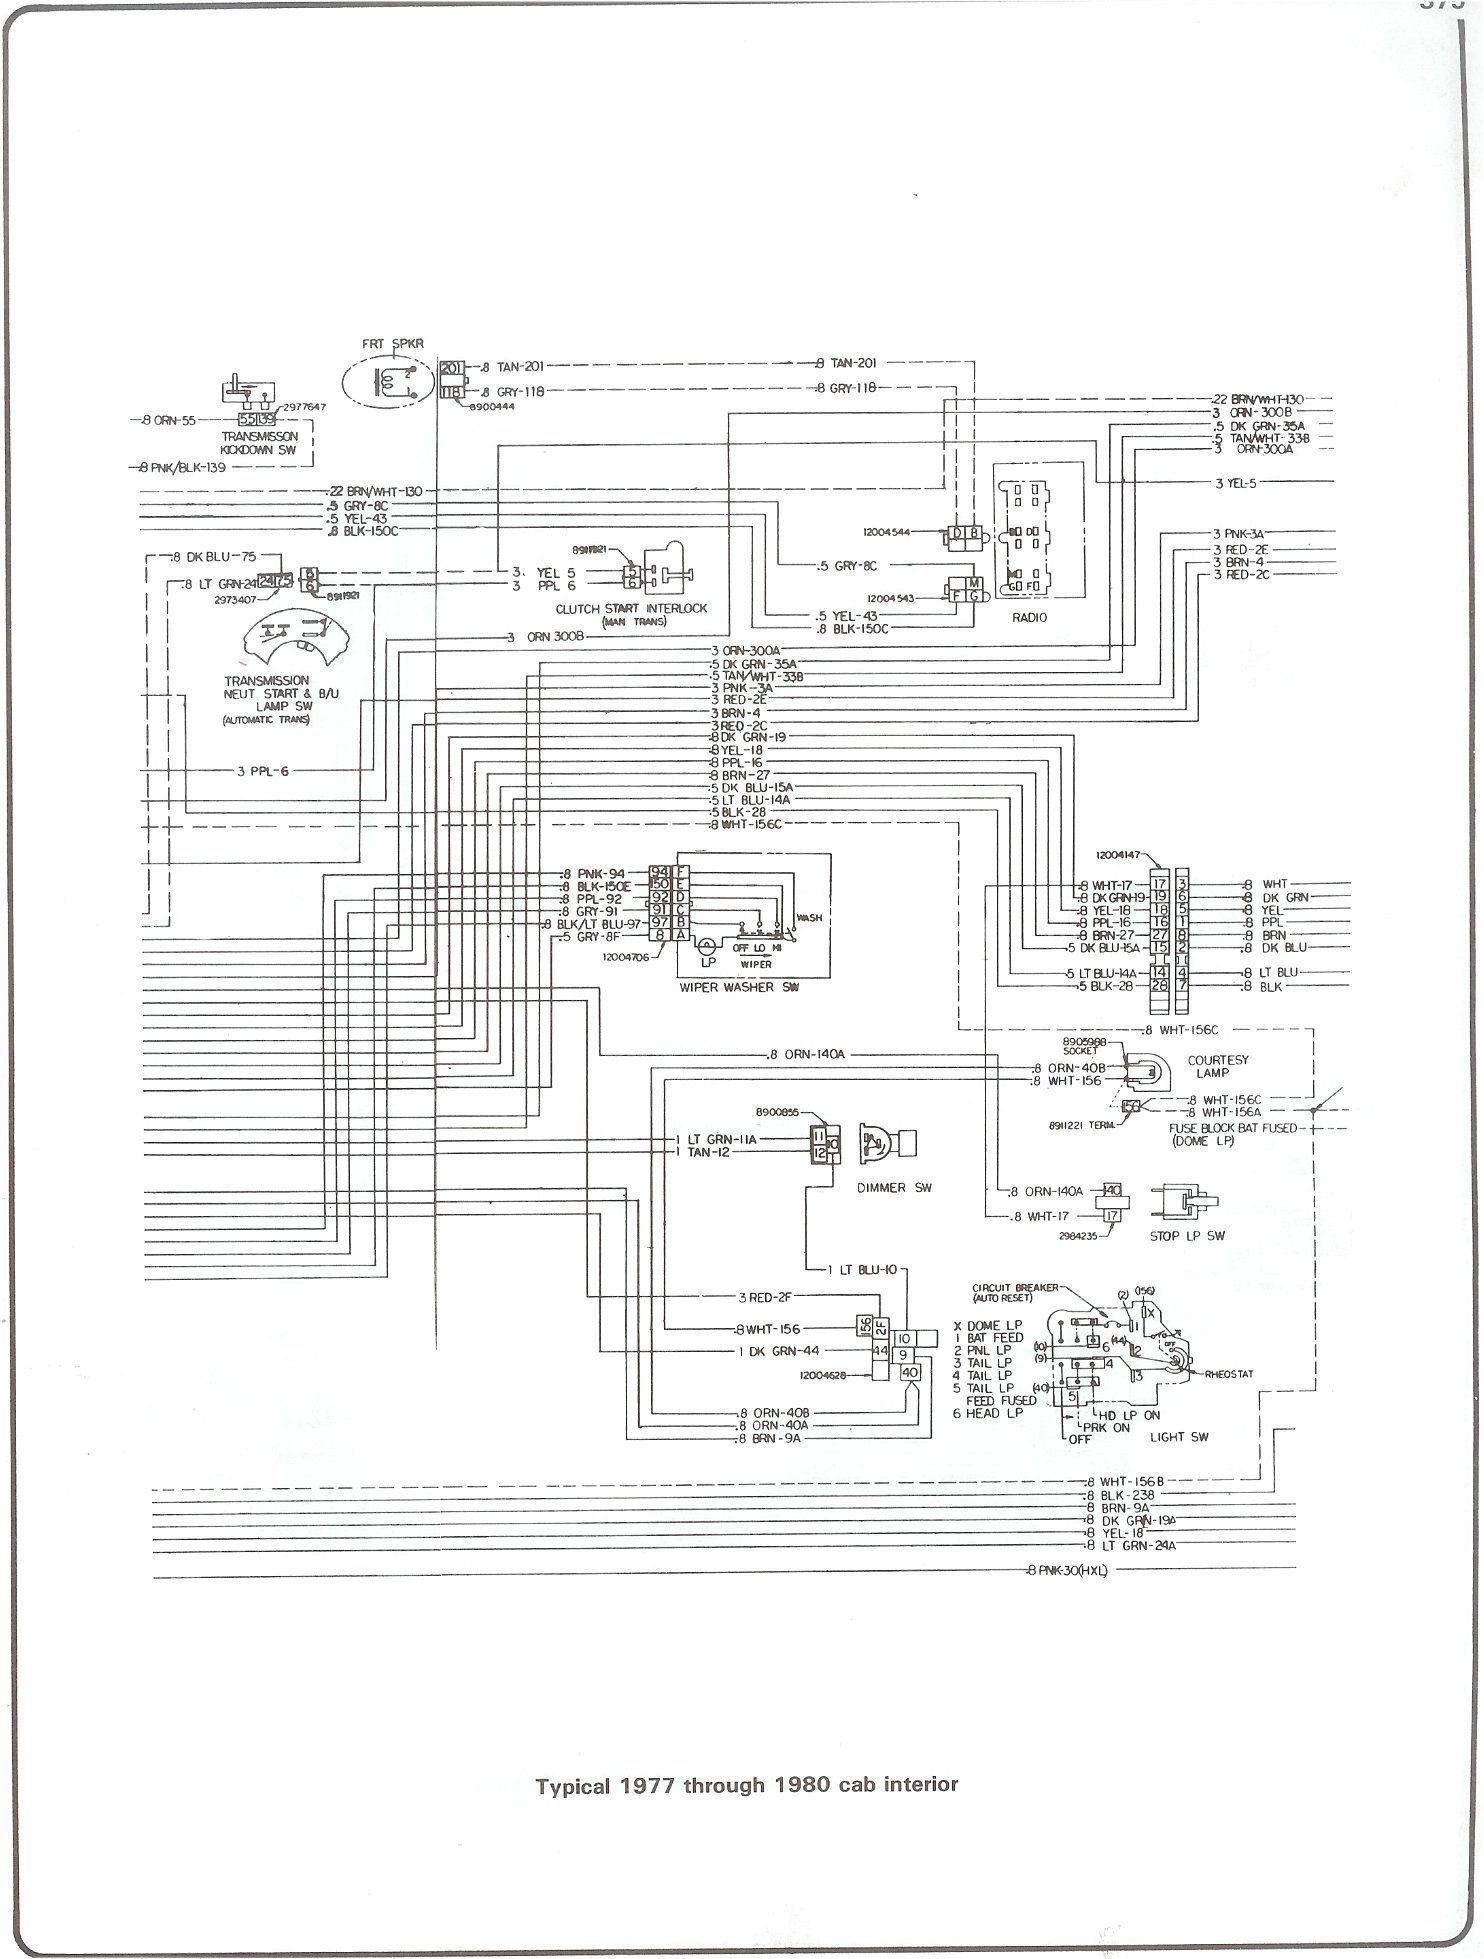 77 80_cab_inter complete 73 87 wiring diagrams power window wiring harness 1998 chevy truck at gsmportal.co